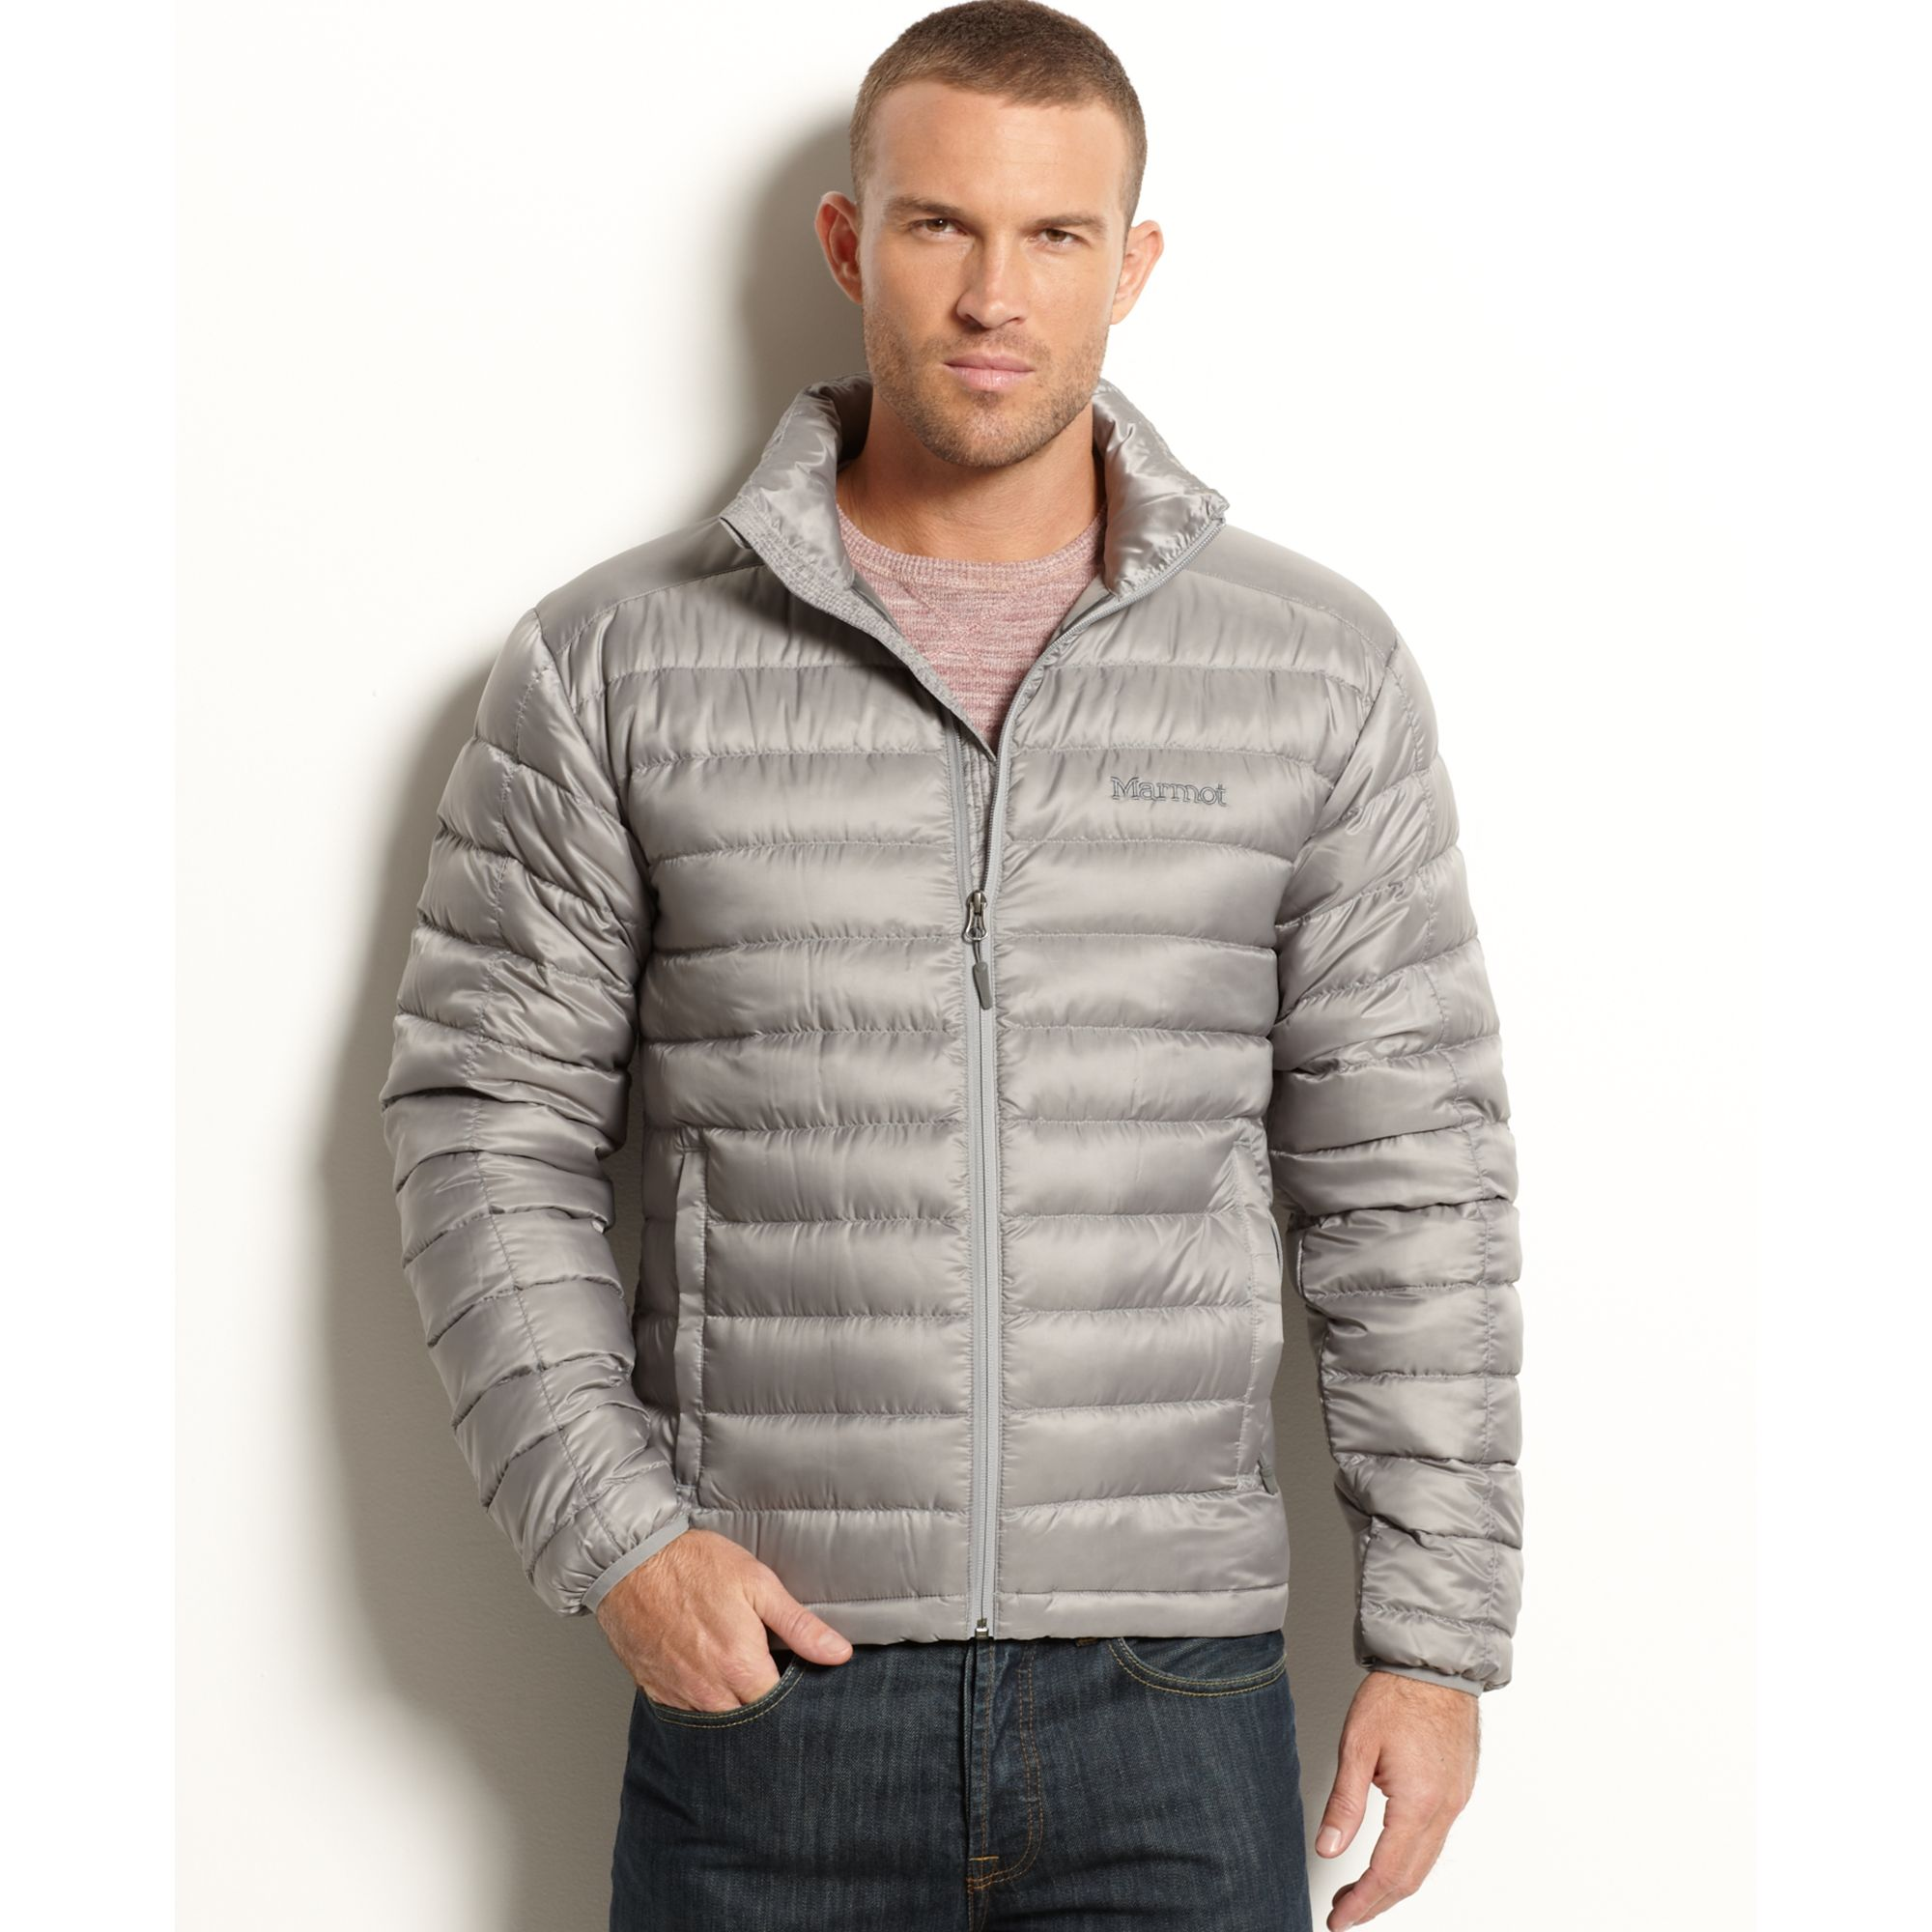 Lyst - Marmot Zeus Quilted Down Packable Puffer in Metallic for Men : marmot quilted jacket - Adamdwight.com